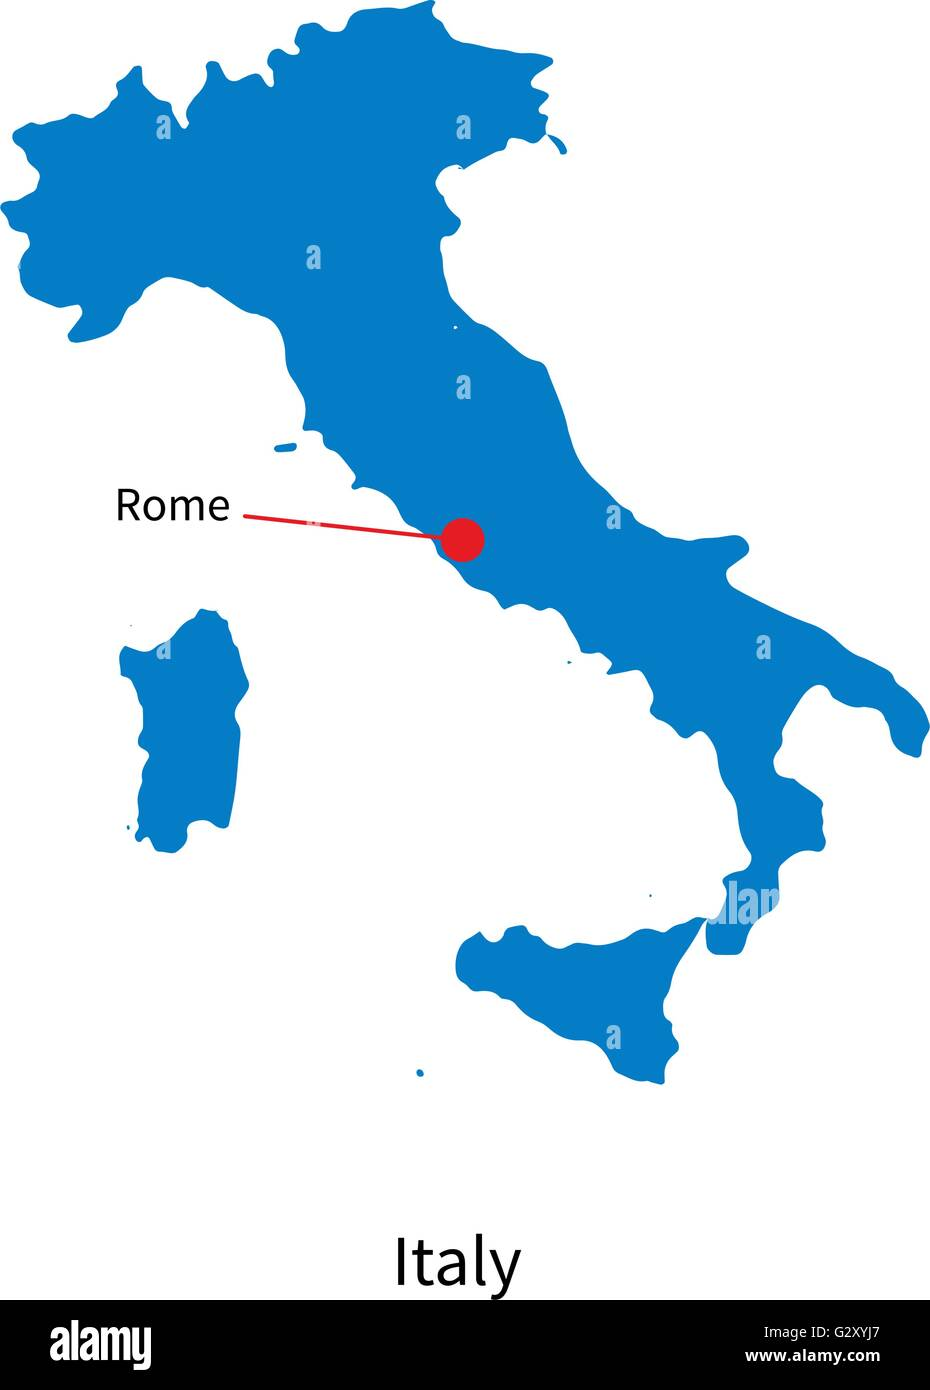 Detailed vector map of italy and capital city rome stock vector art detailed vector map of italy and capital city rome thecheapjerseys Choice Image